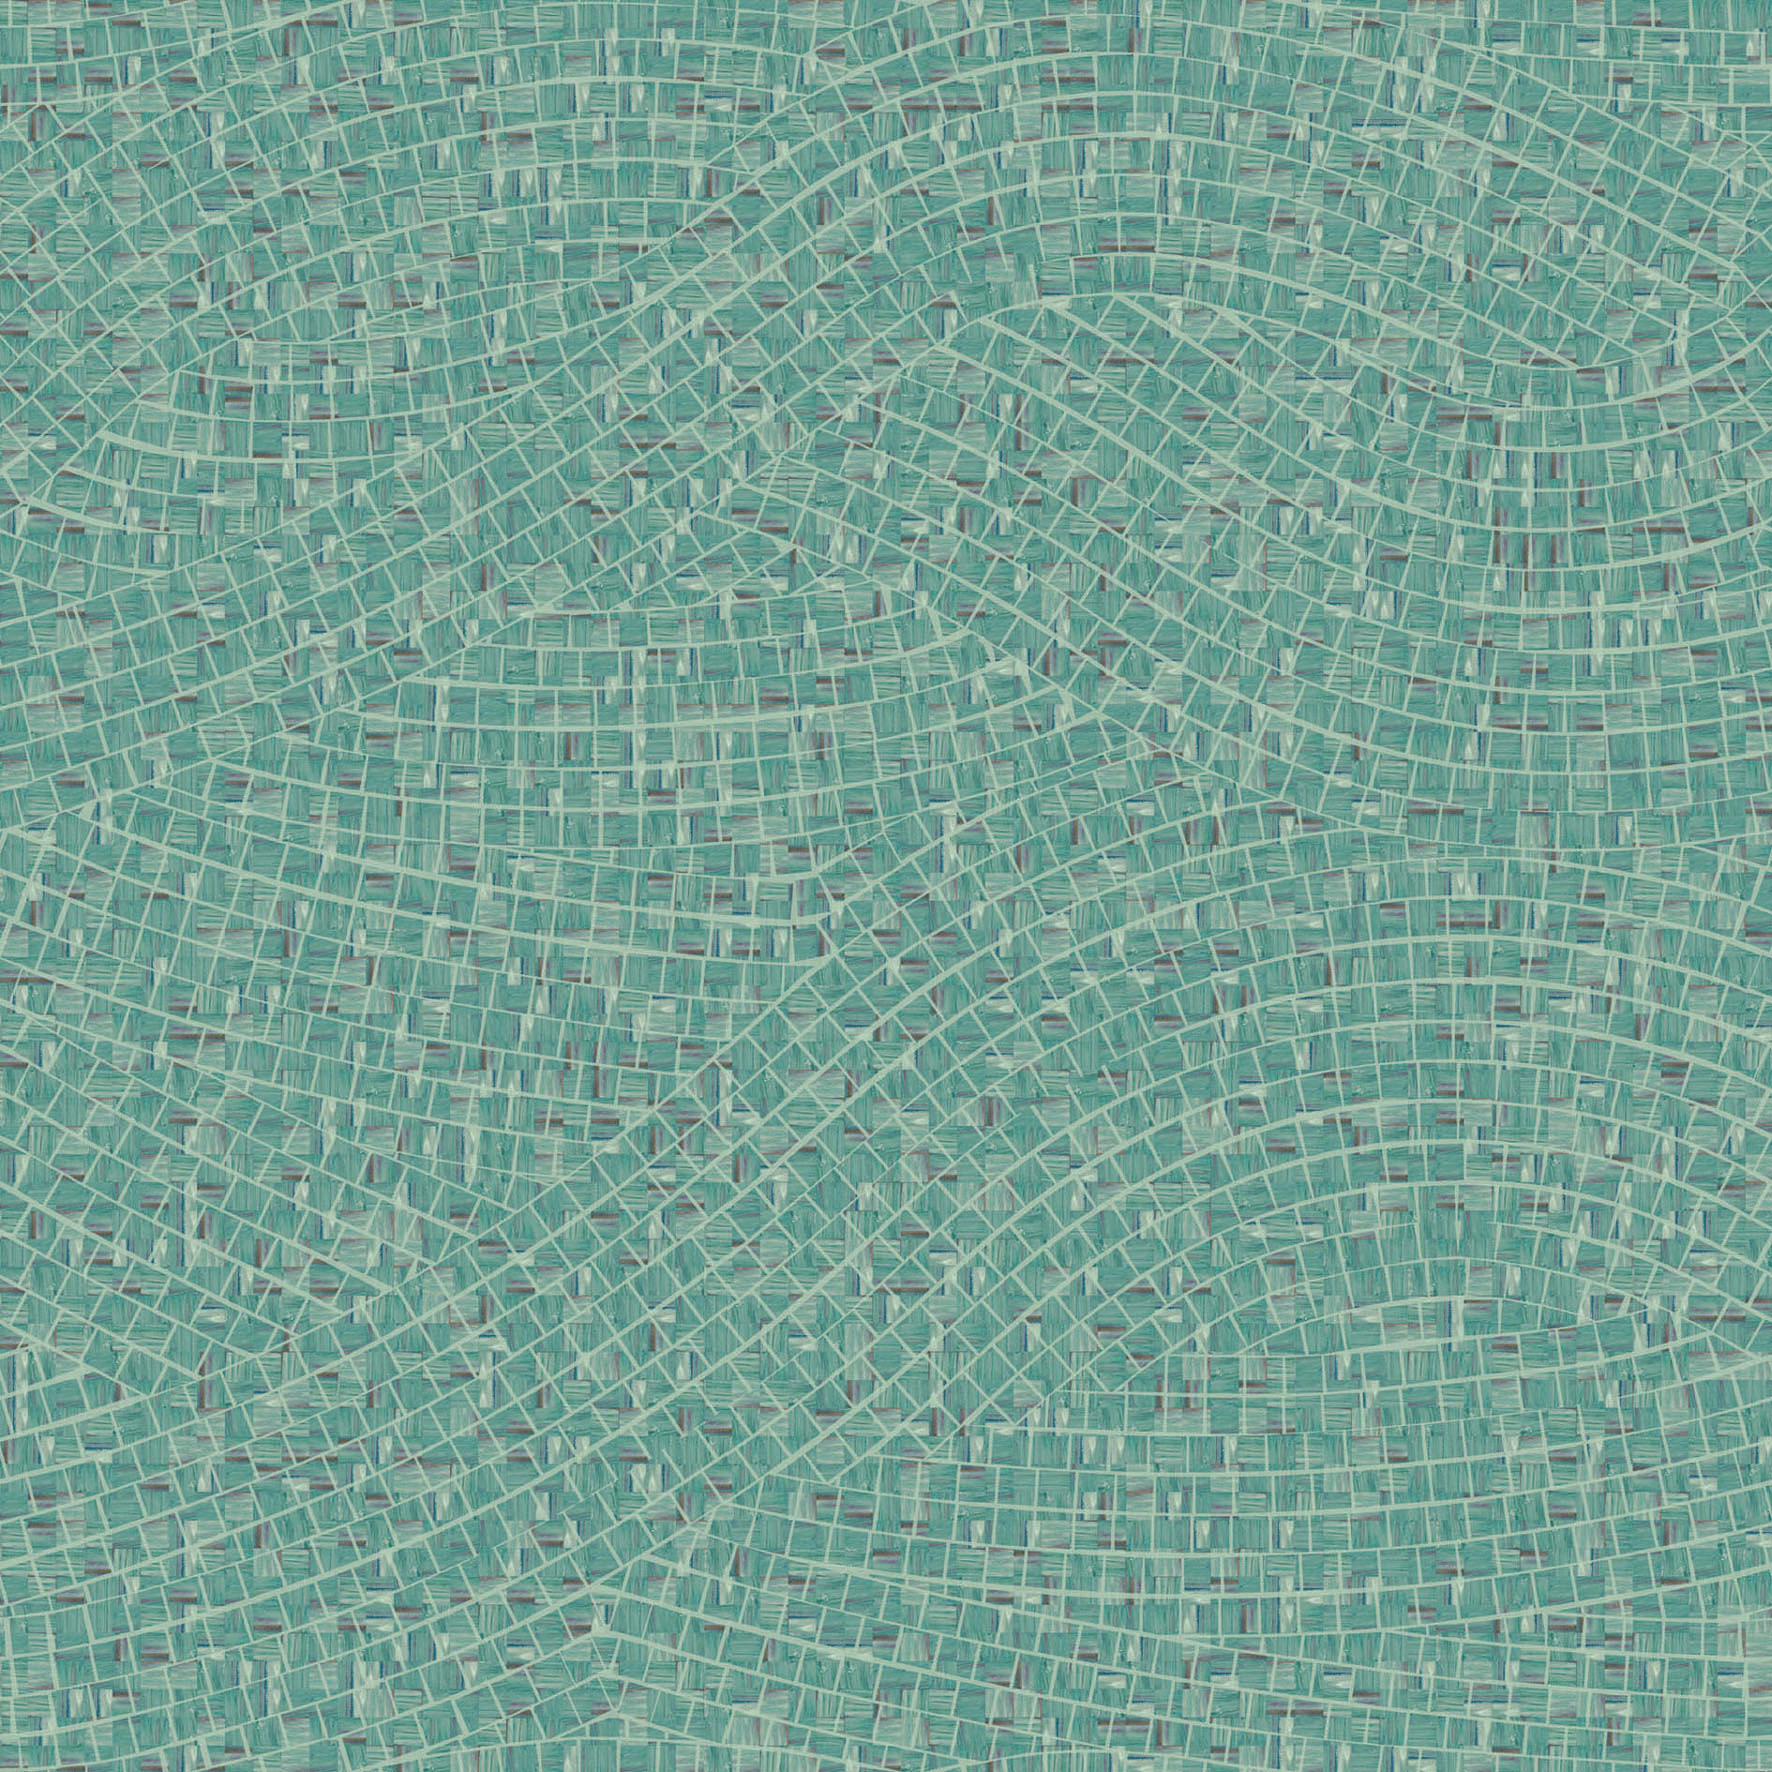 Handmade Decorative Tiles Enchanting Wave Gm2032 Pattern In Bisazza Glass Mosaic 20X20Mm Tiles Decorating Inspiration